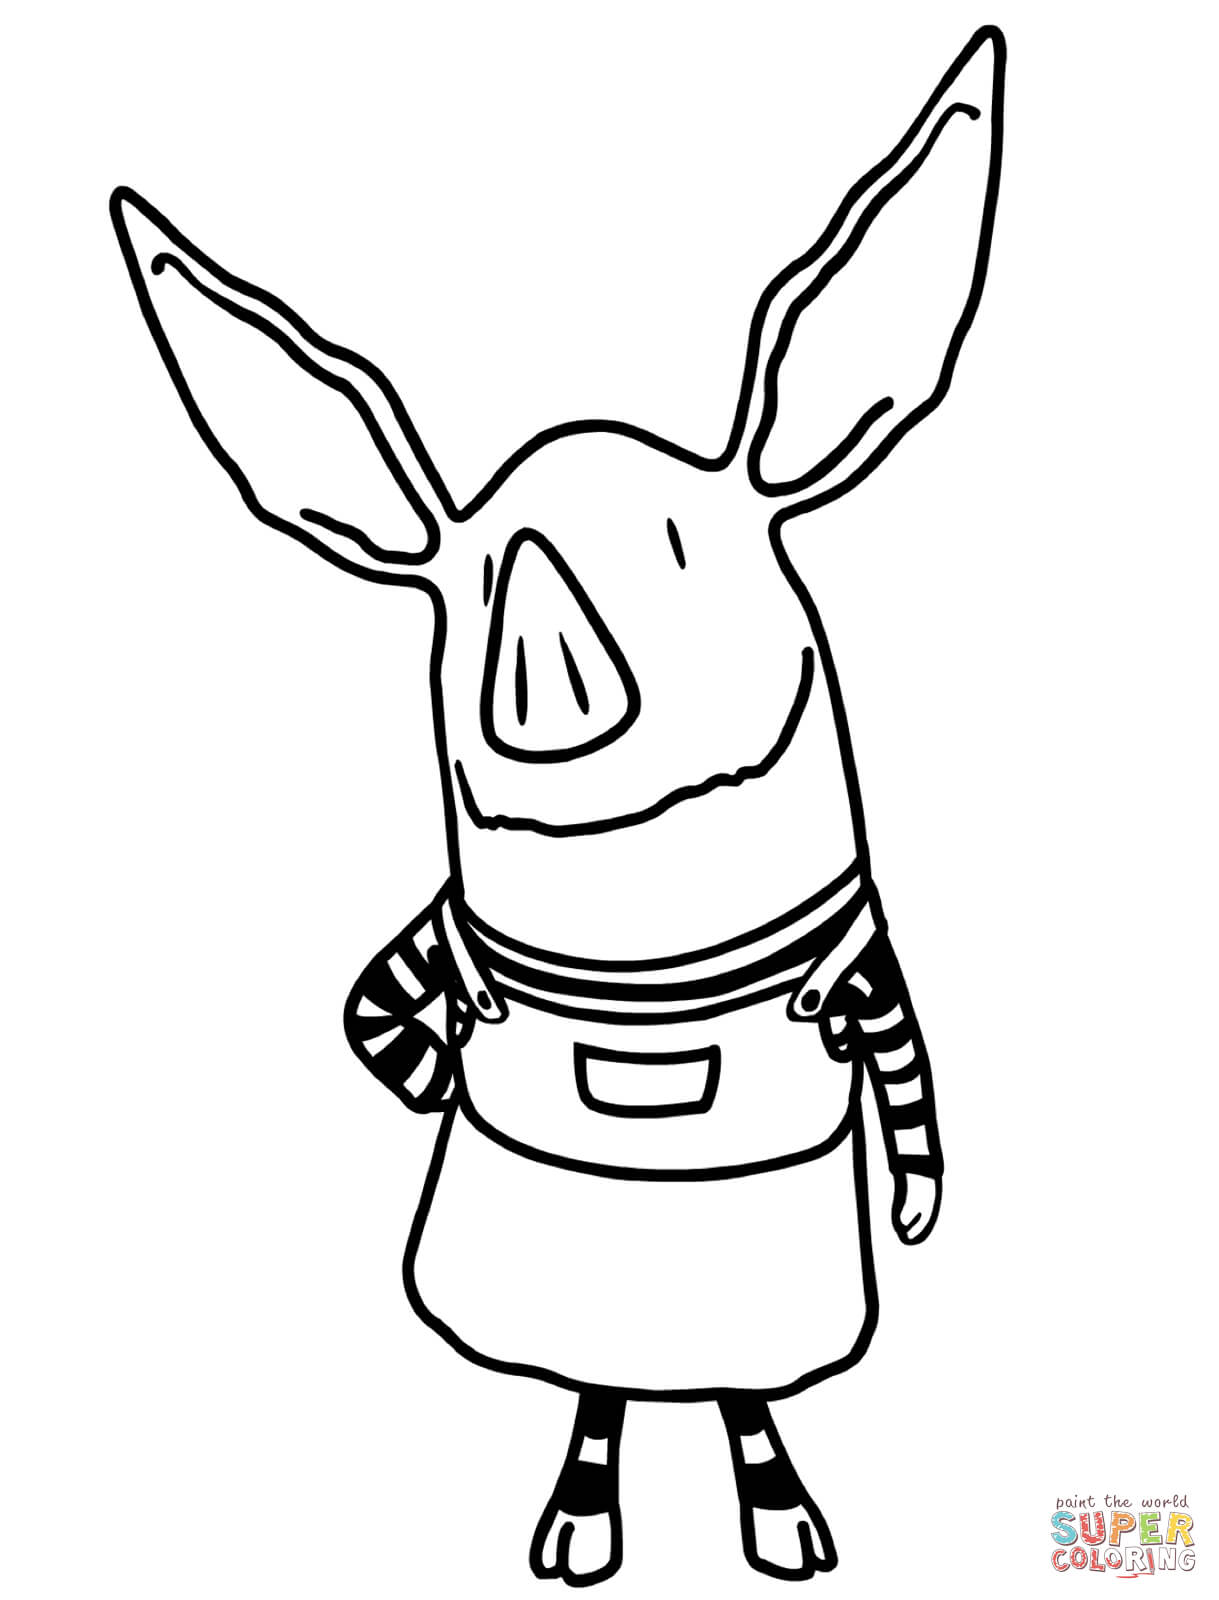 olivia coloring pages for kids - photo#1